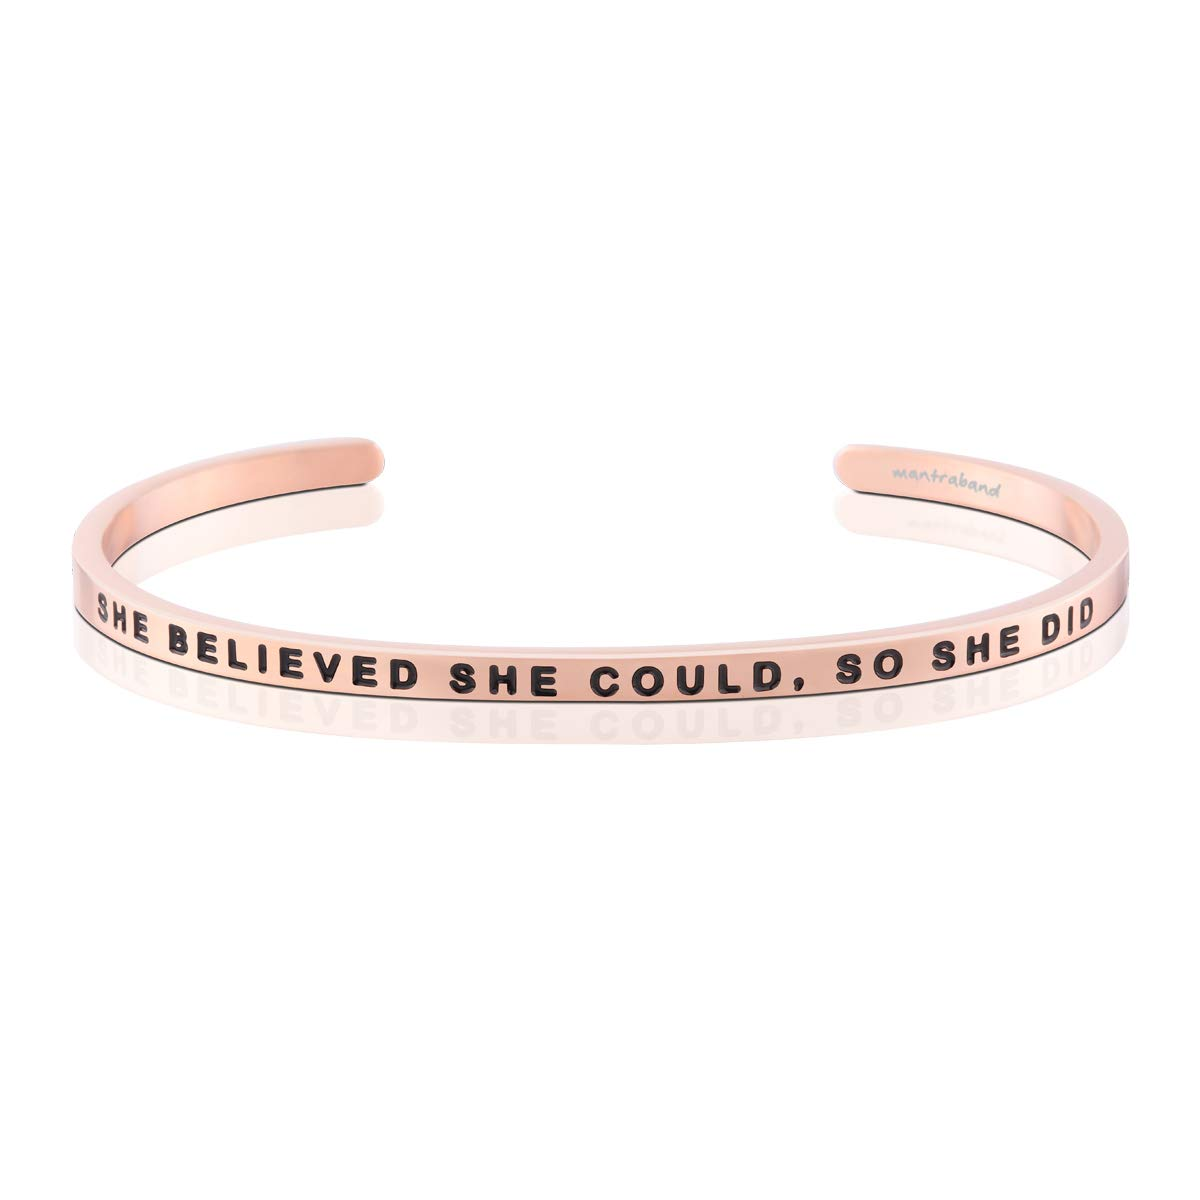 MantraBand Bracelet - She Believed She Could, So She Did - Inspirational Engraved Adjustable Mantra Cuff - Rose Gold - Perfect Little Gift (Rose Gold)